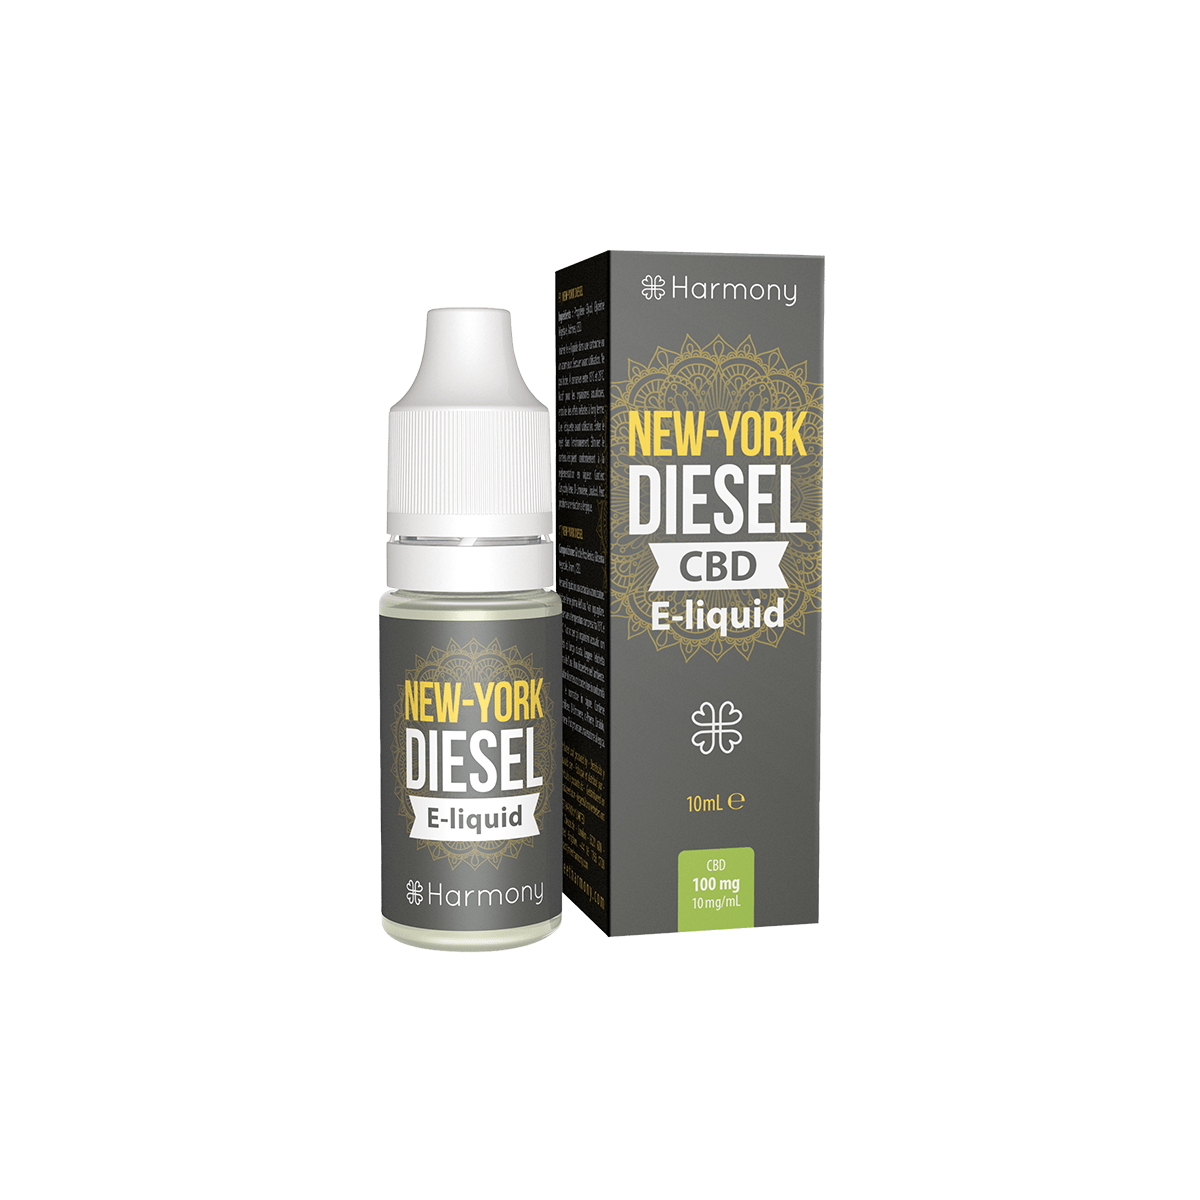 CBD Liquid | HARMONY New York Diesel | Menge 10 ml - 300 mg